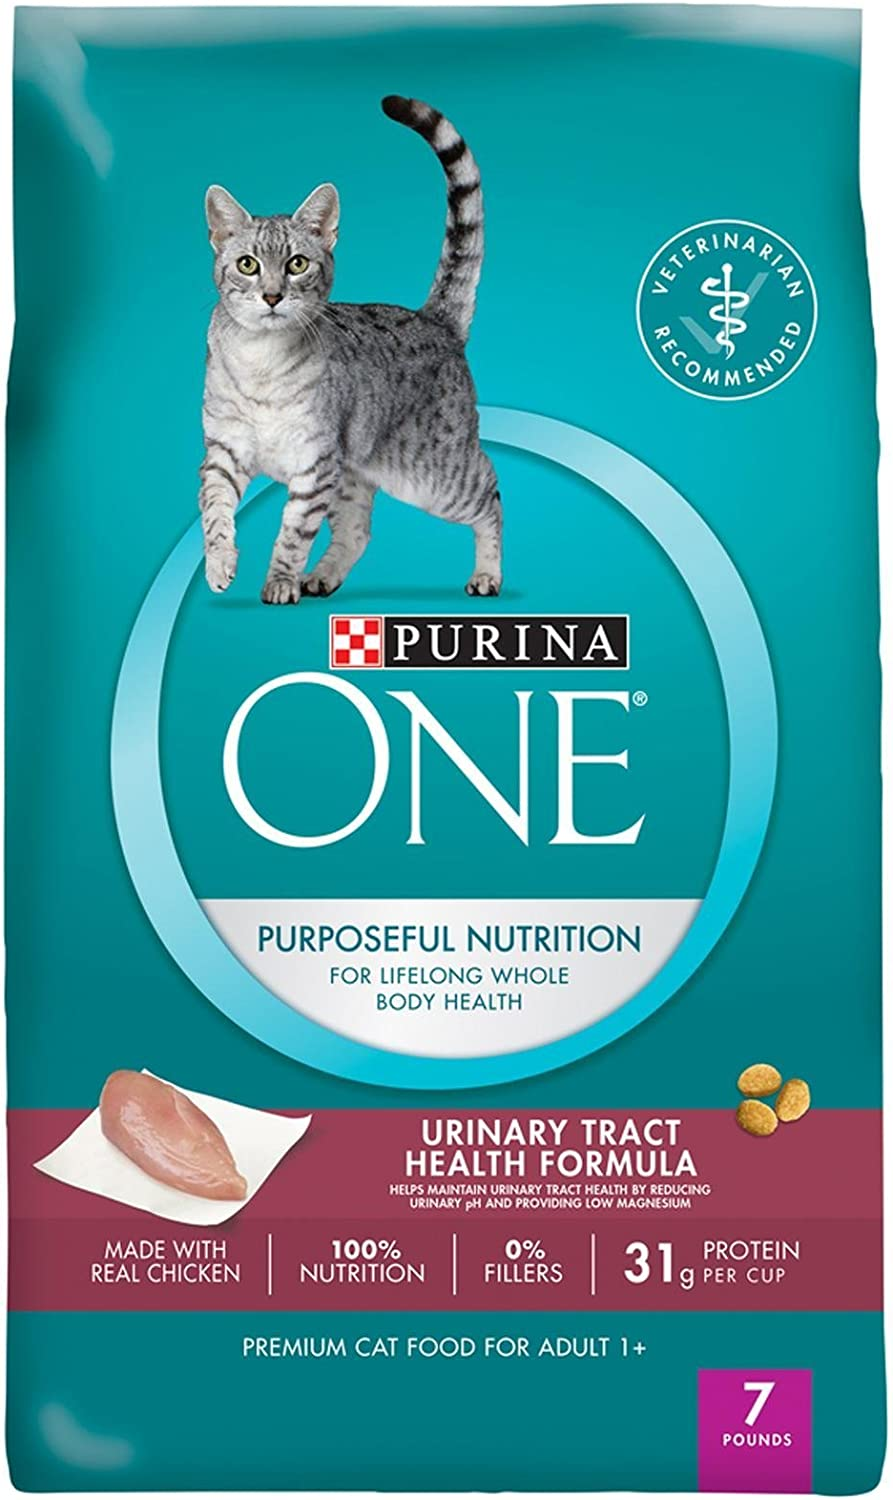 Purina ONE Purposeful Nutrition Dry Cat Food - Adult Urinary Tract Health Formula - 7 lb